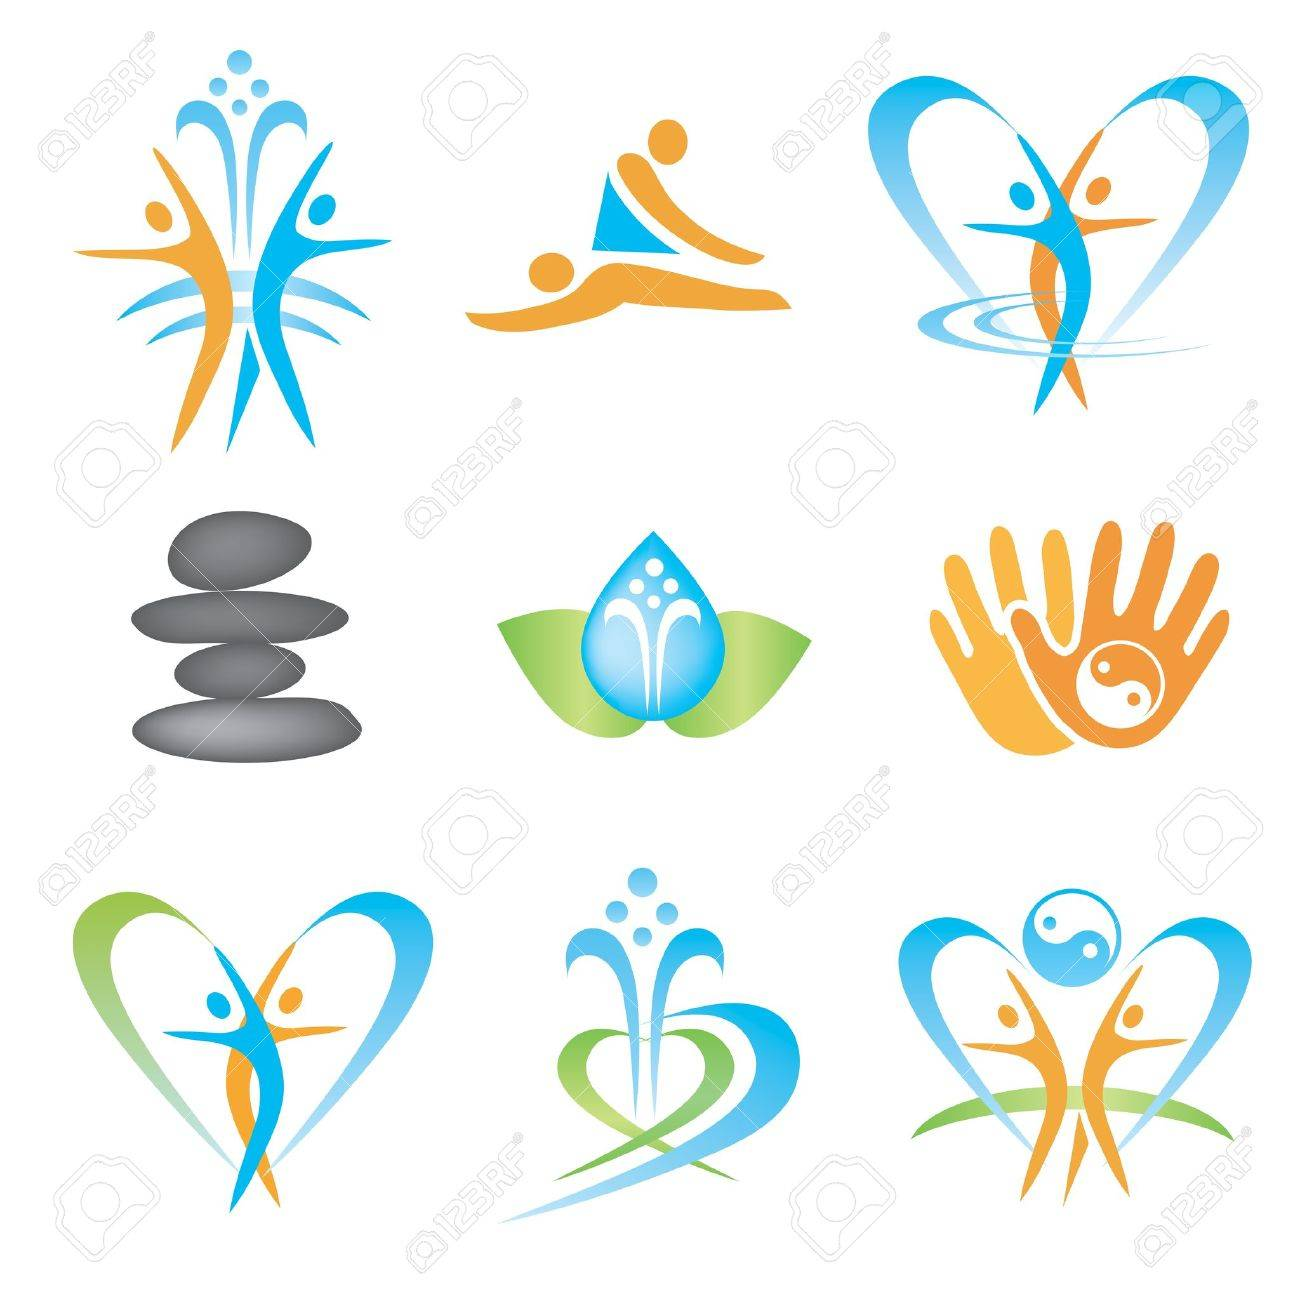 Spa_massage_health_icons Stock Vector - 18406312